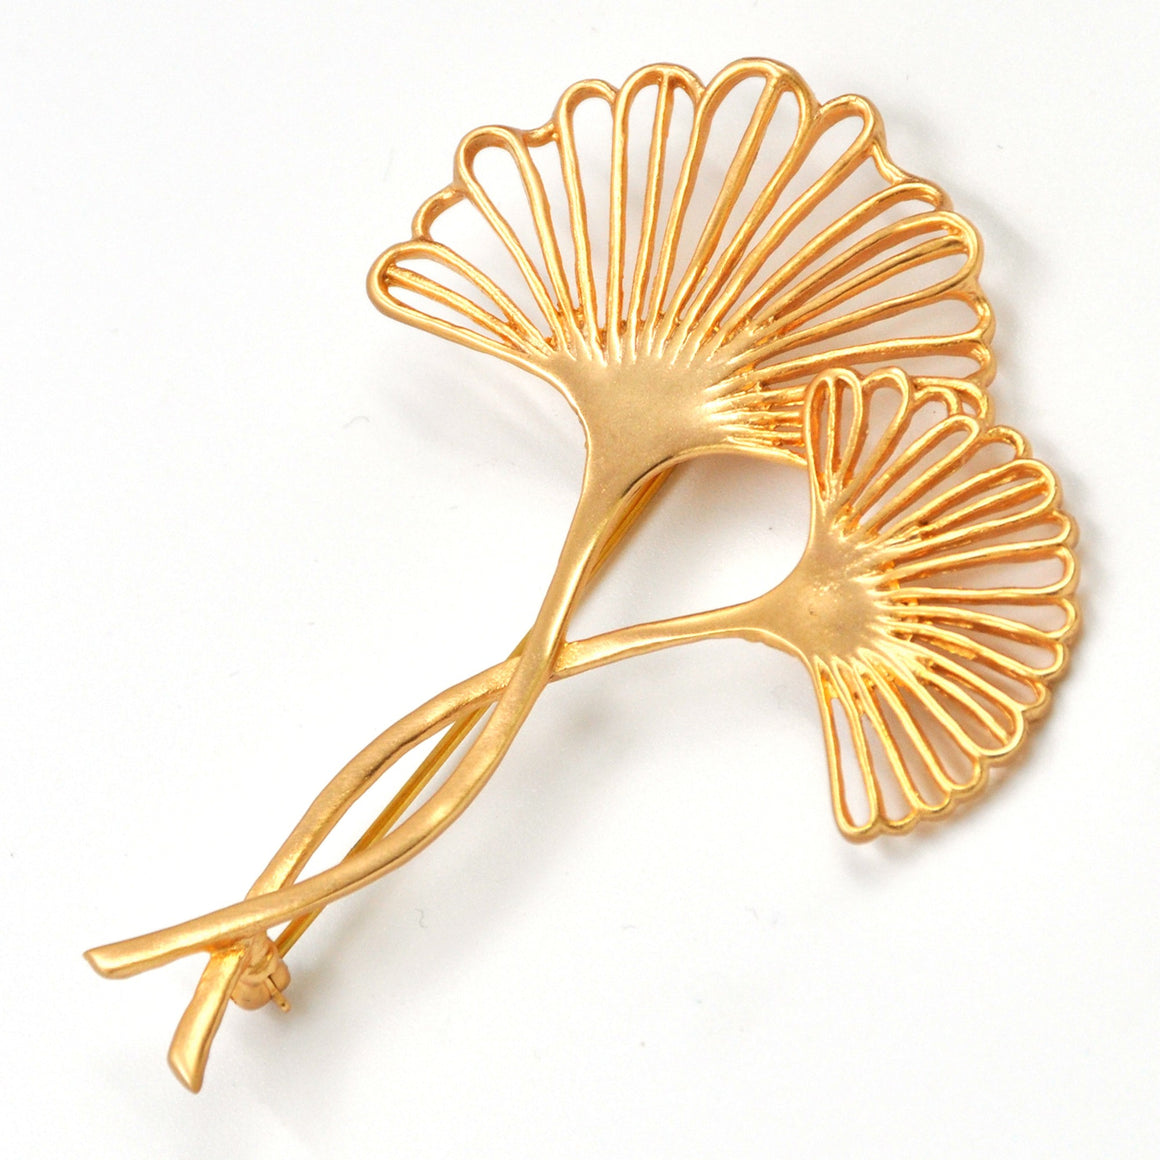 Ginkgo Two-Leaf Pin - 24K Gold Plated